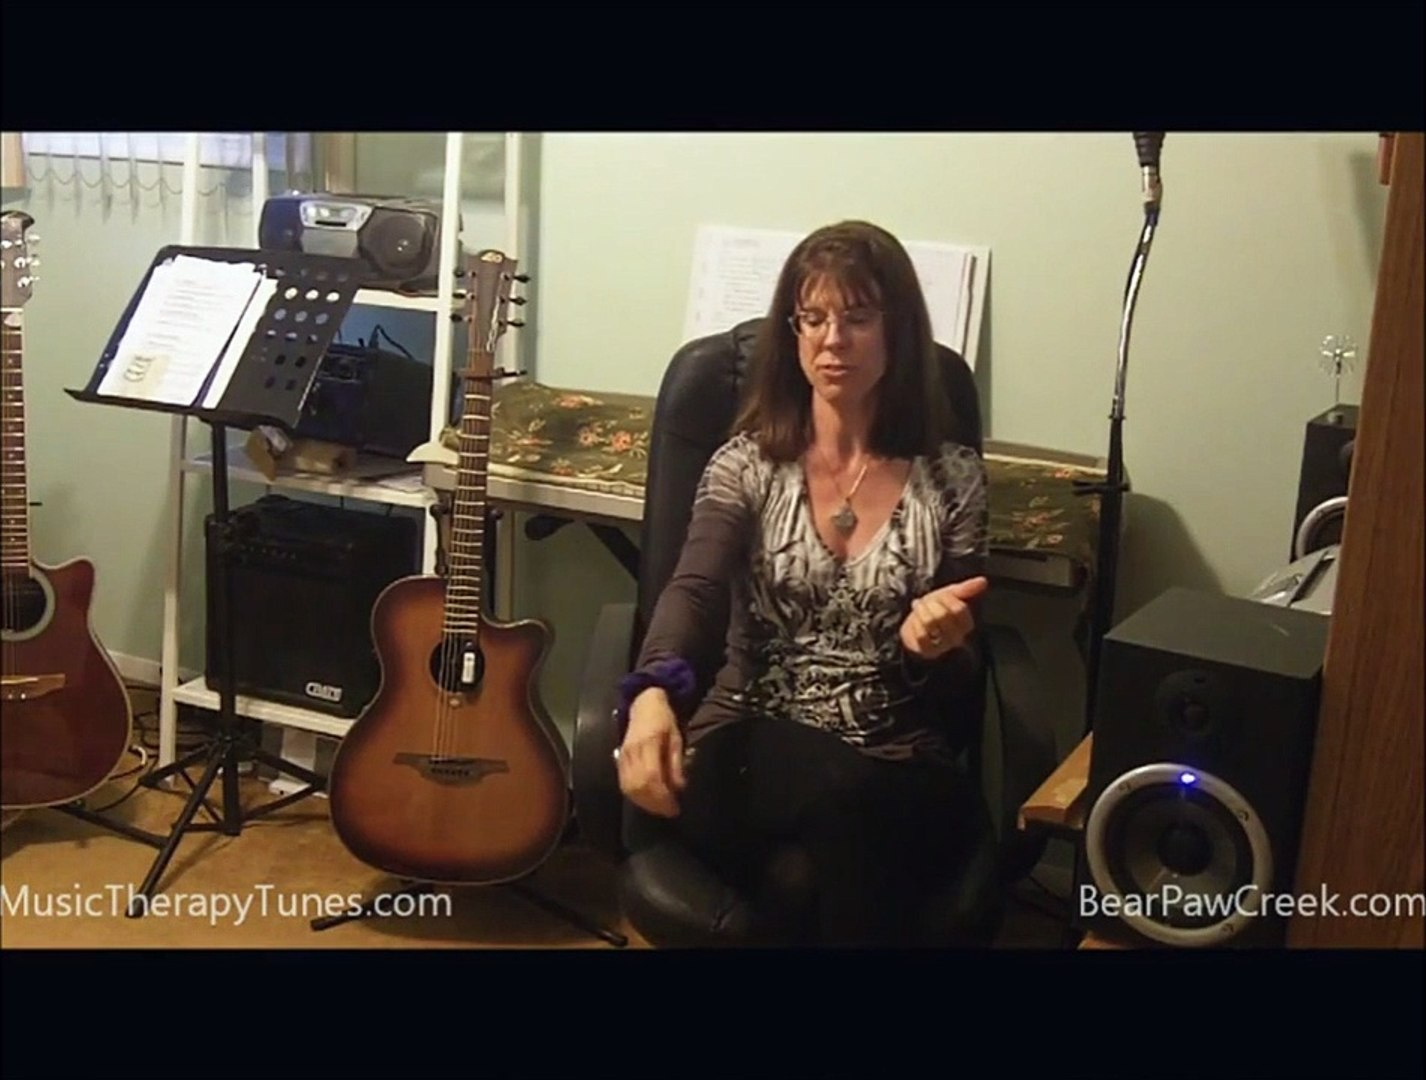 6 Music Therapy / Ed Bell Activities for Children / Kids